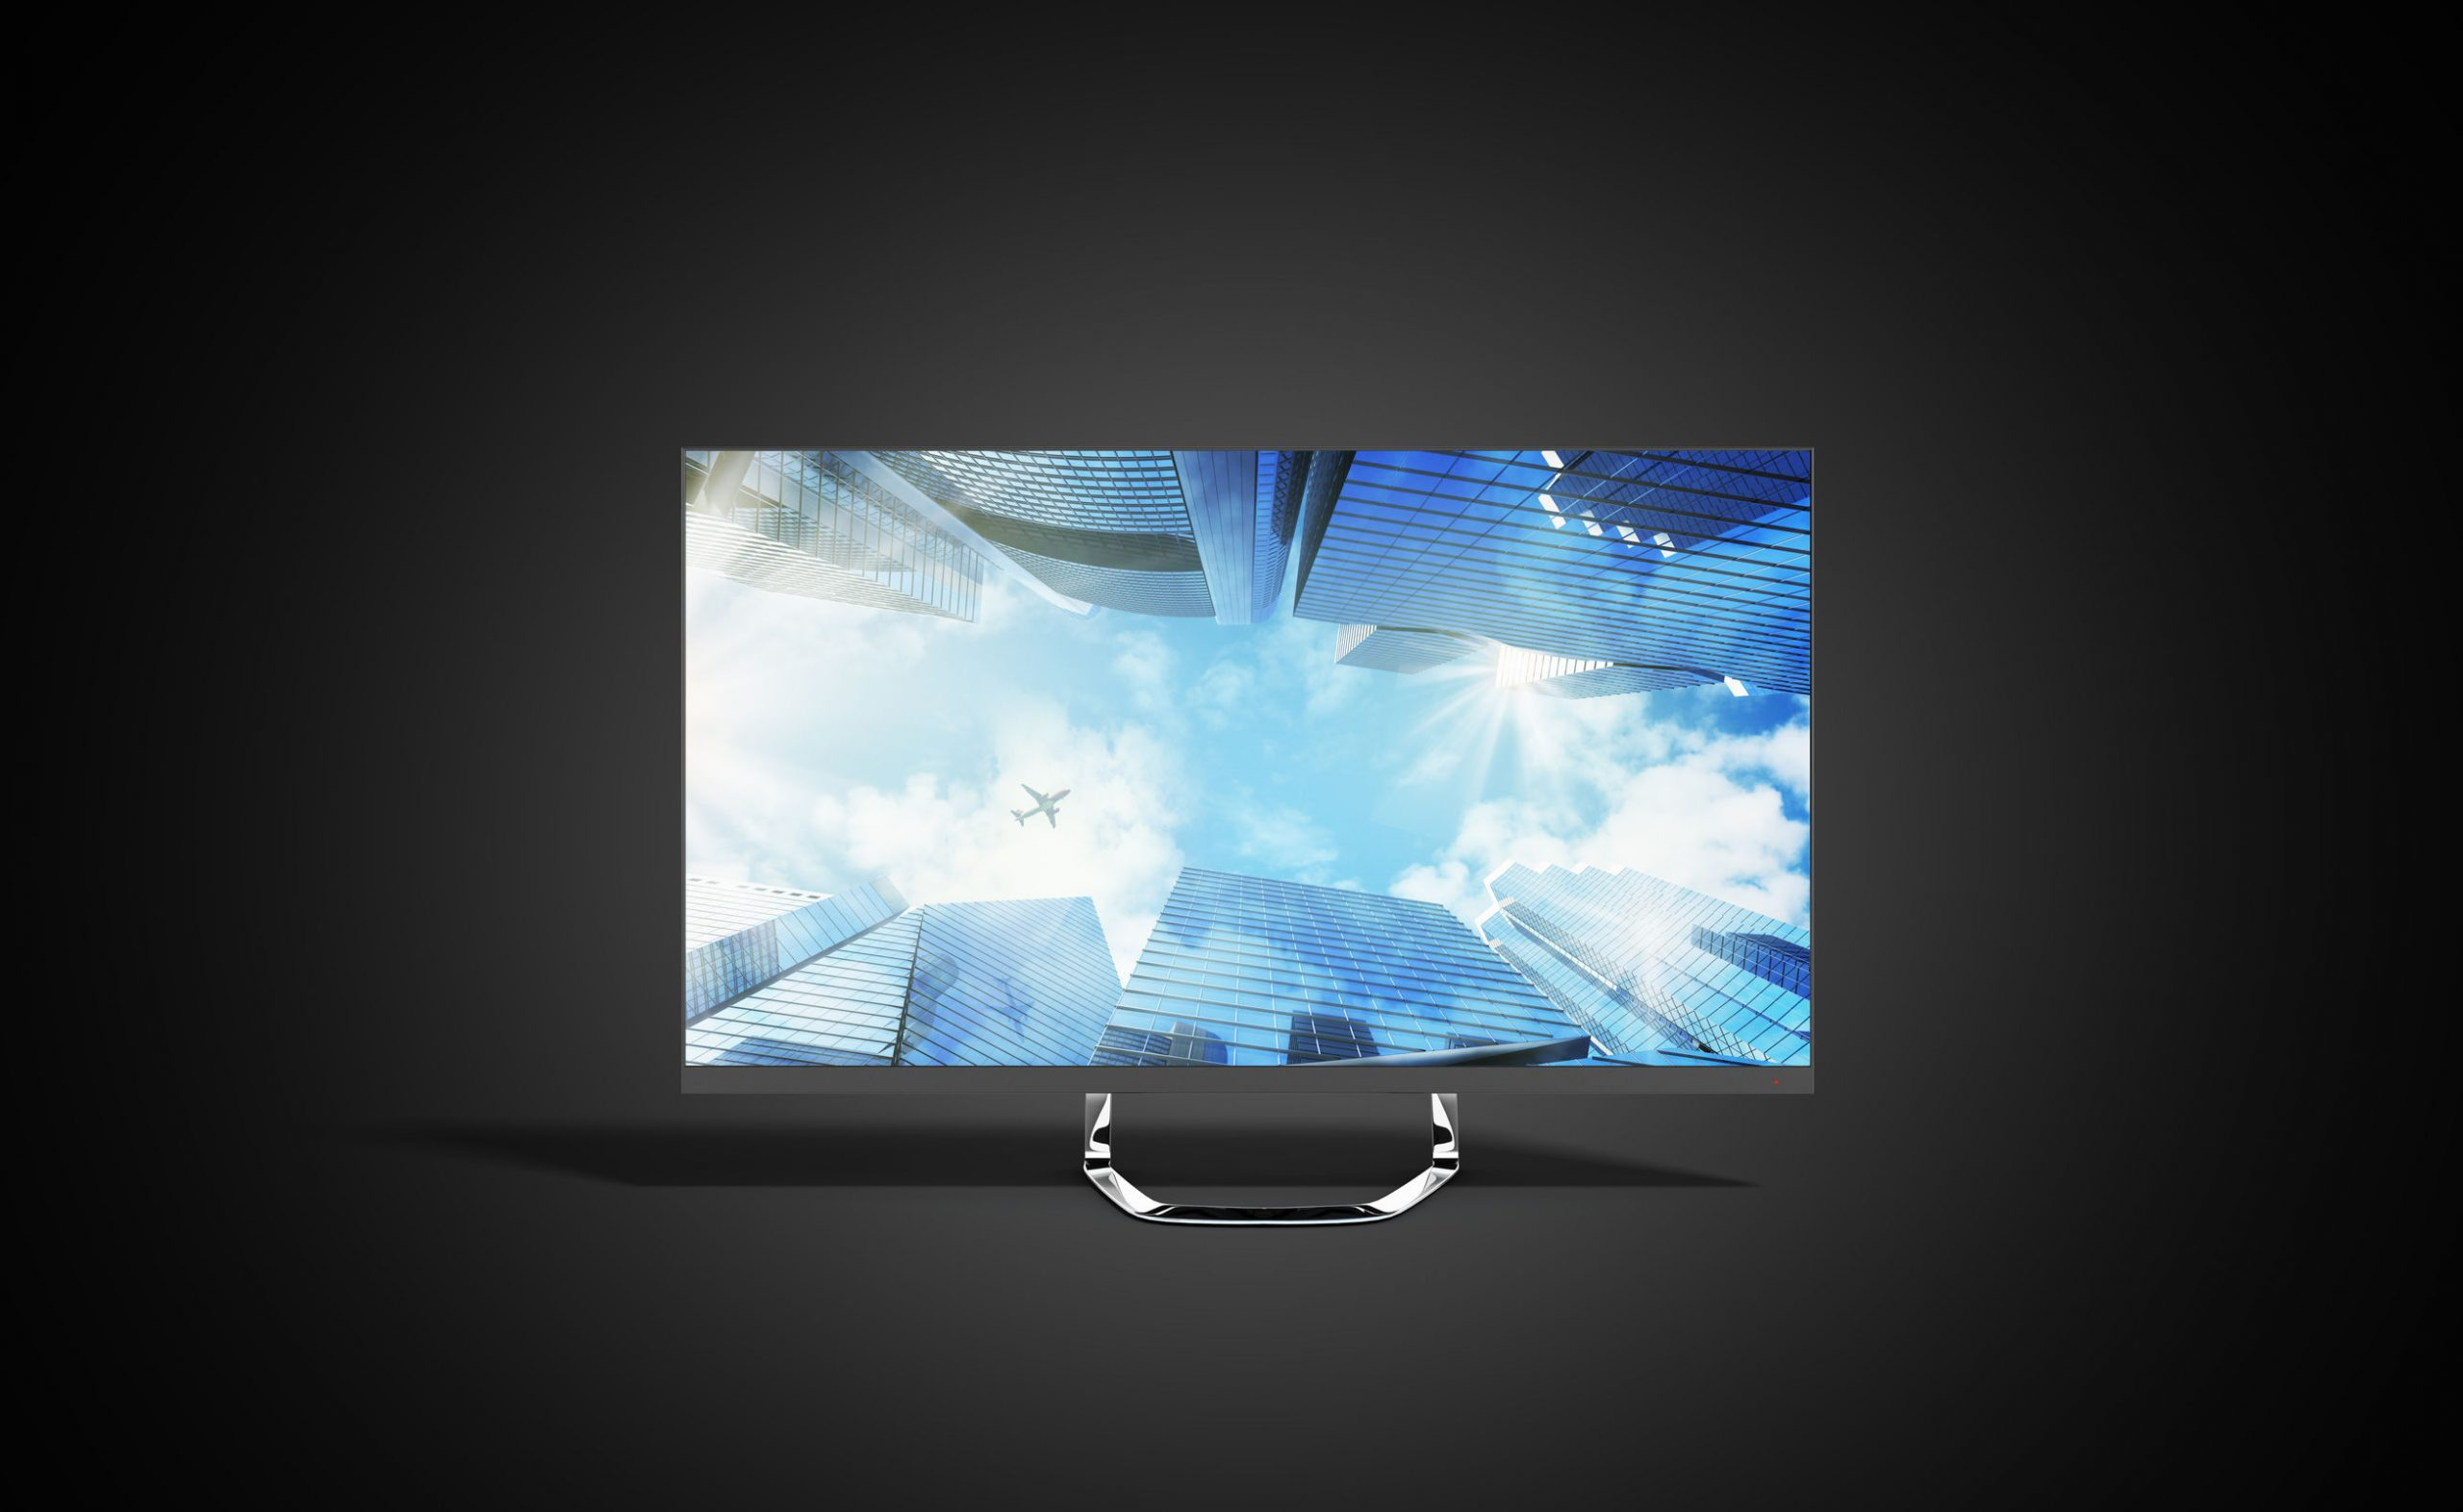 4k monitor 3d render image on black background